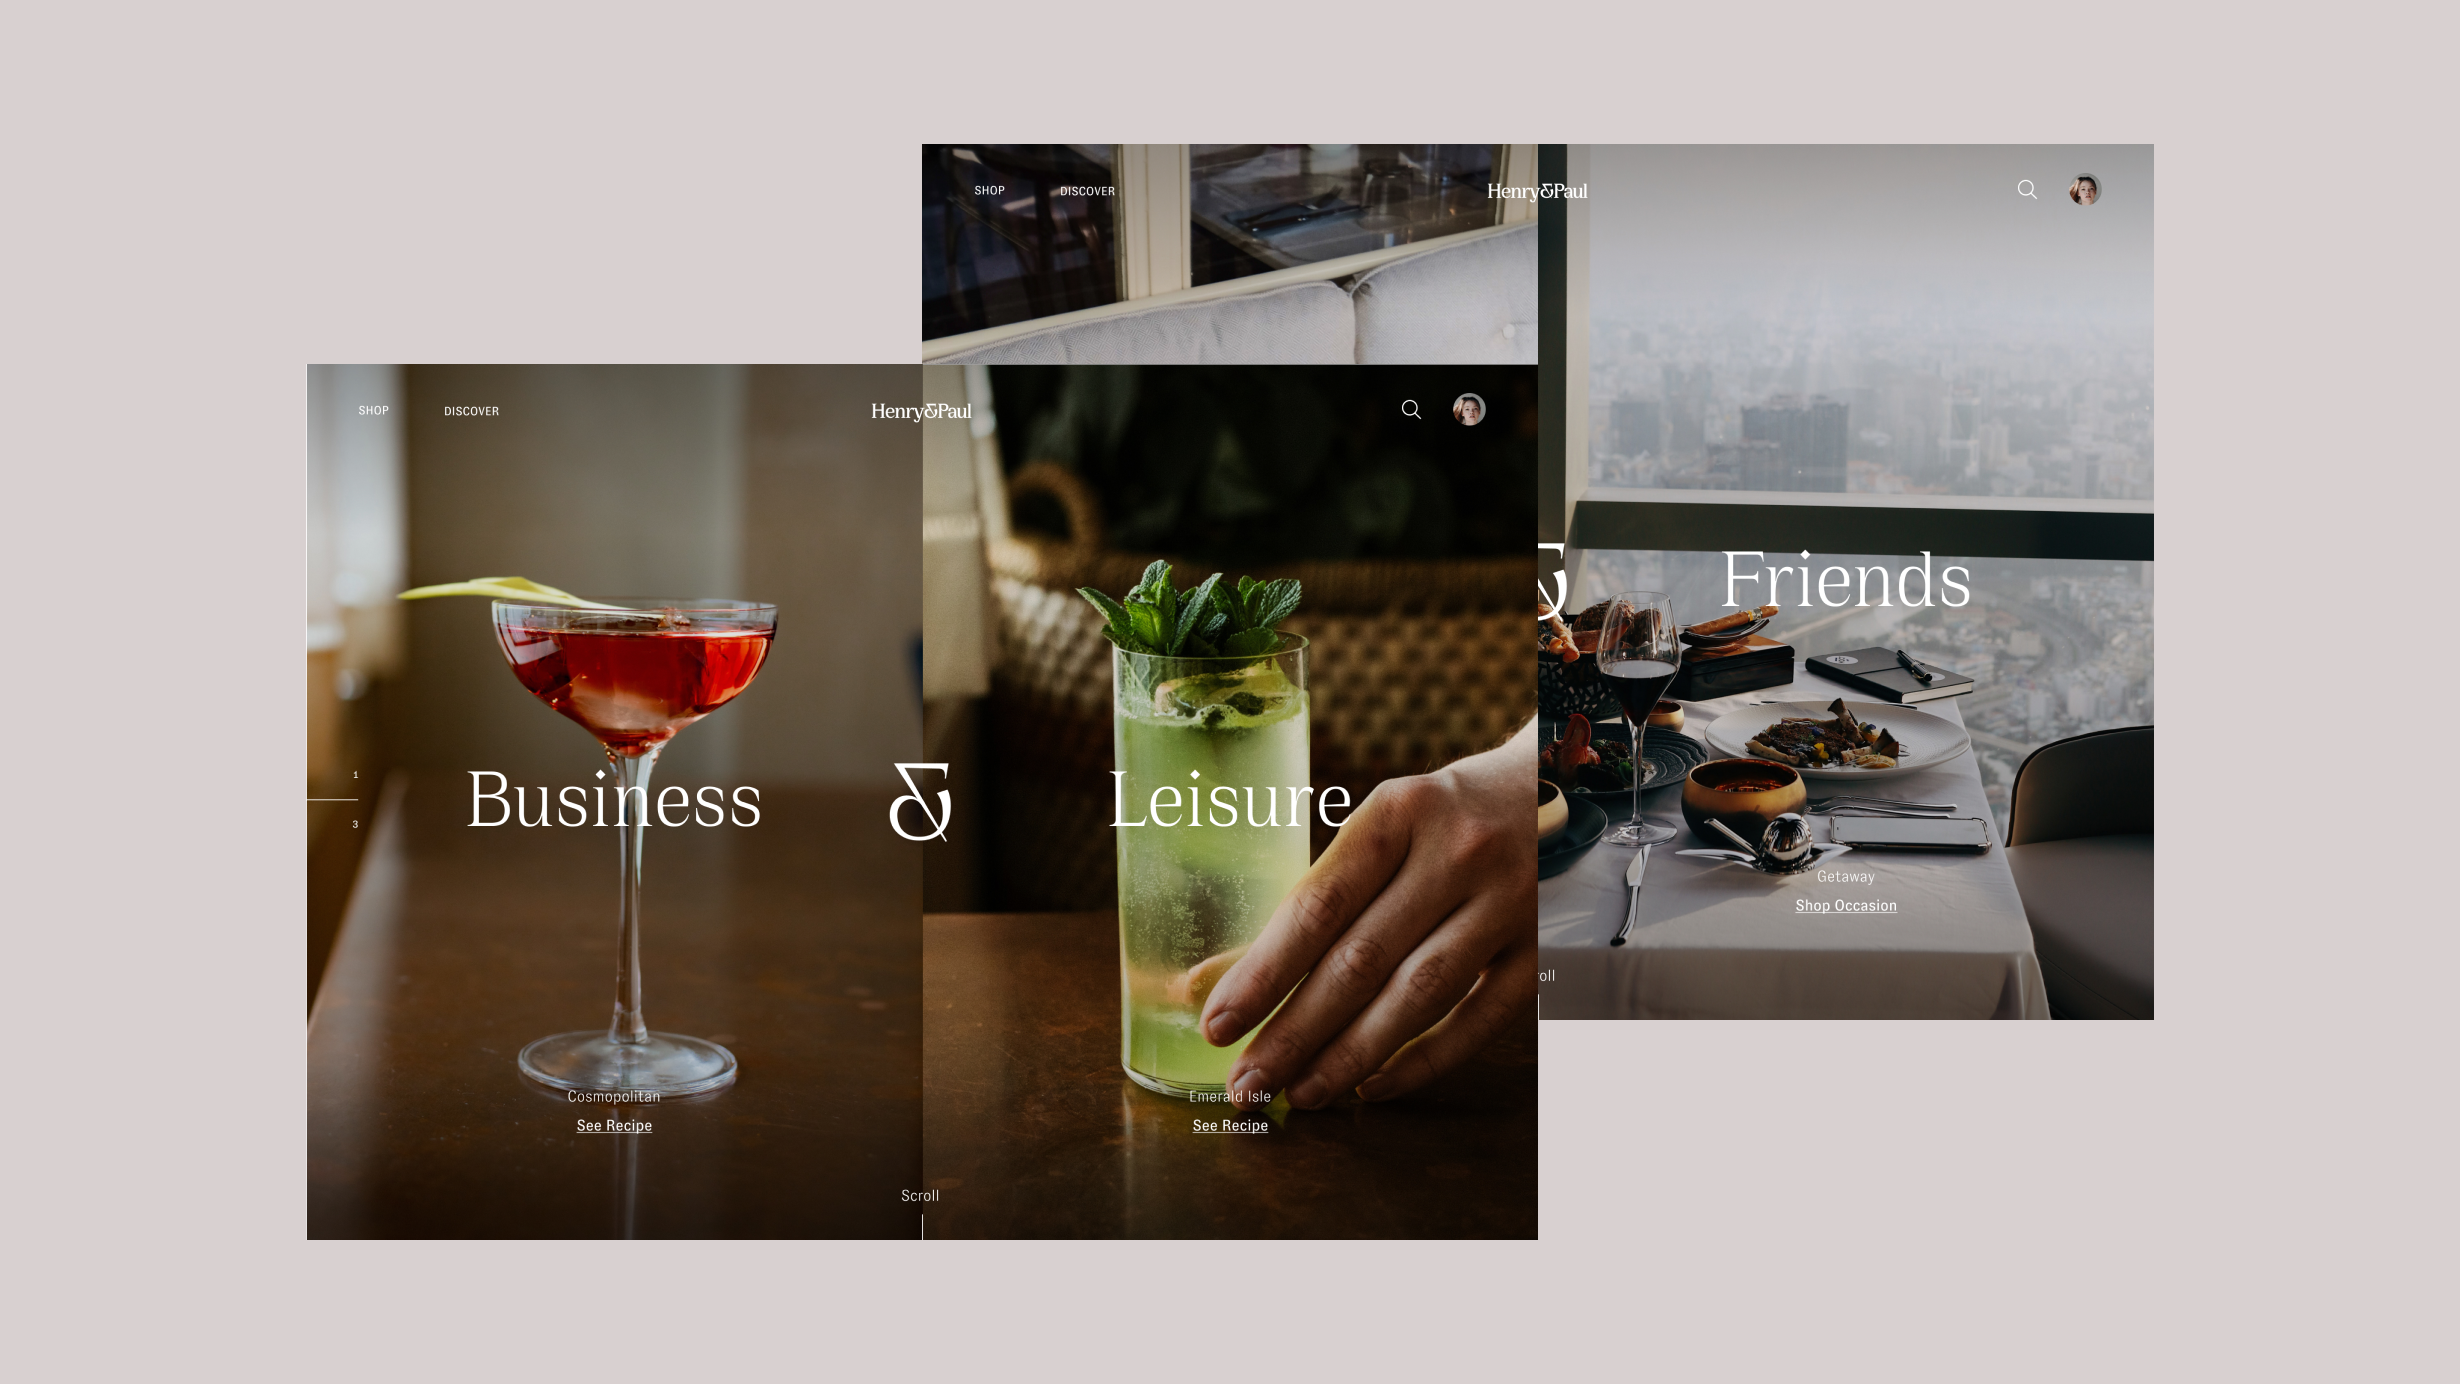 Two screenshots of the Henry & Paul website, showcasing different cocktails